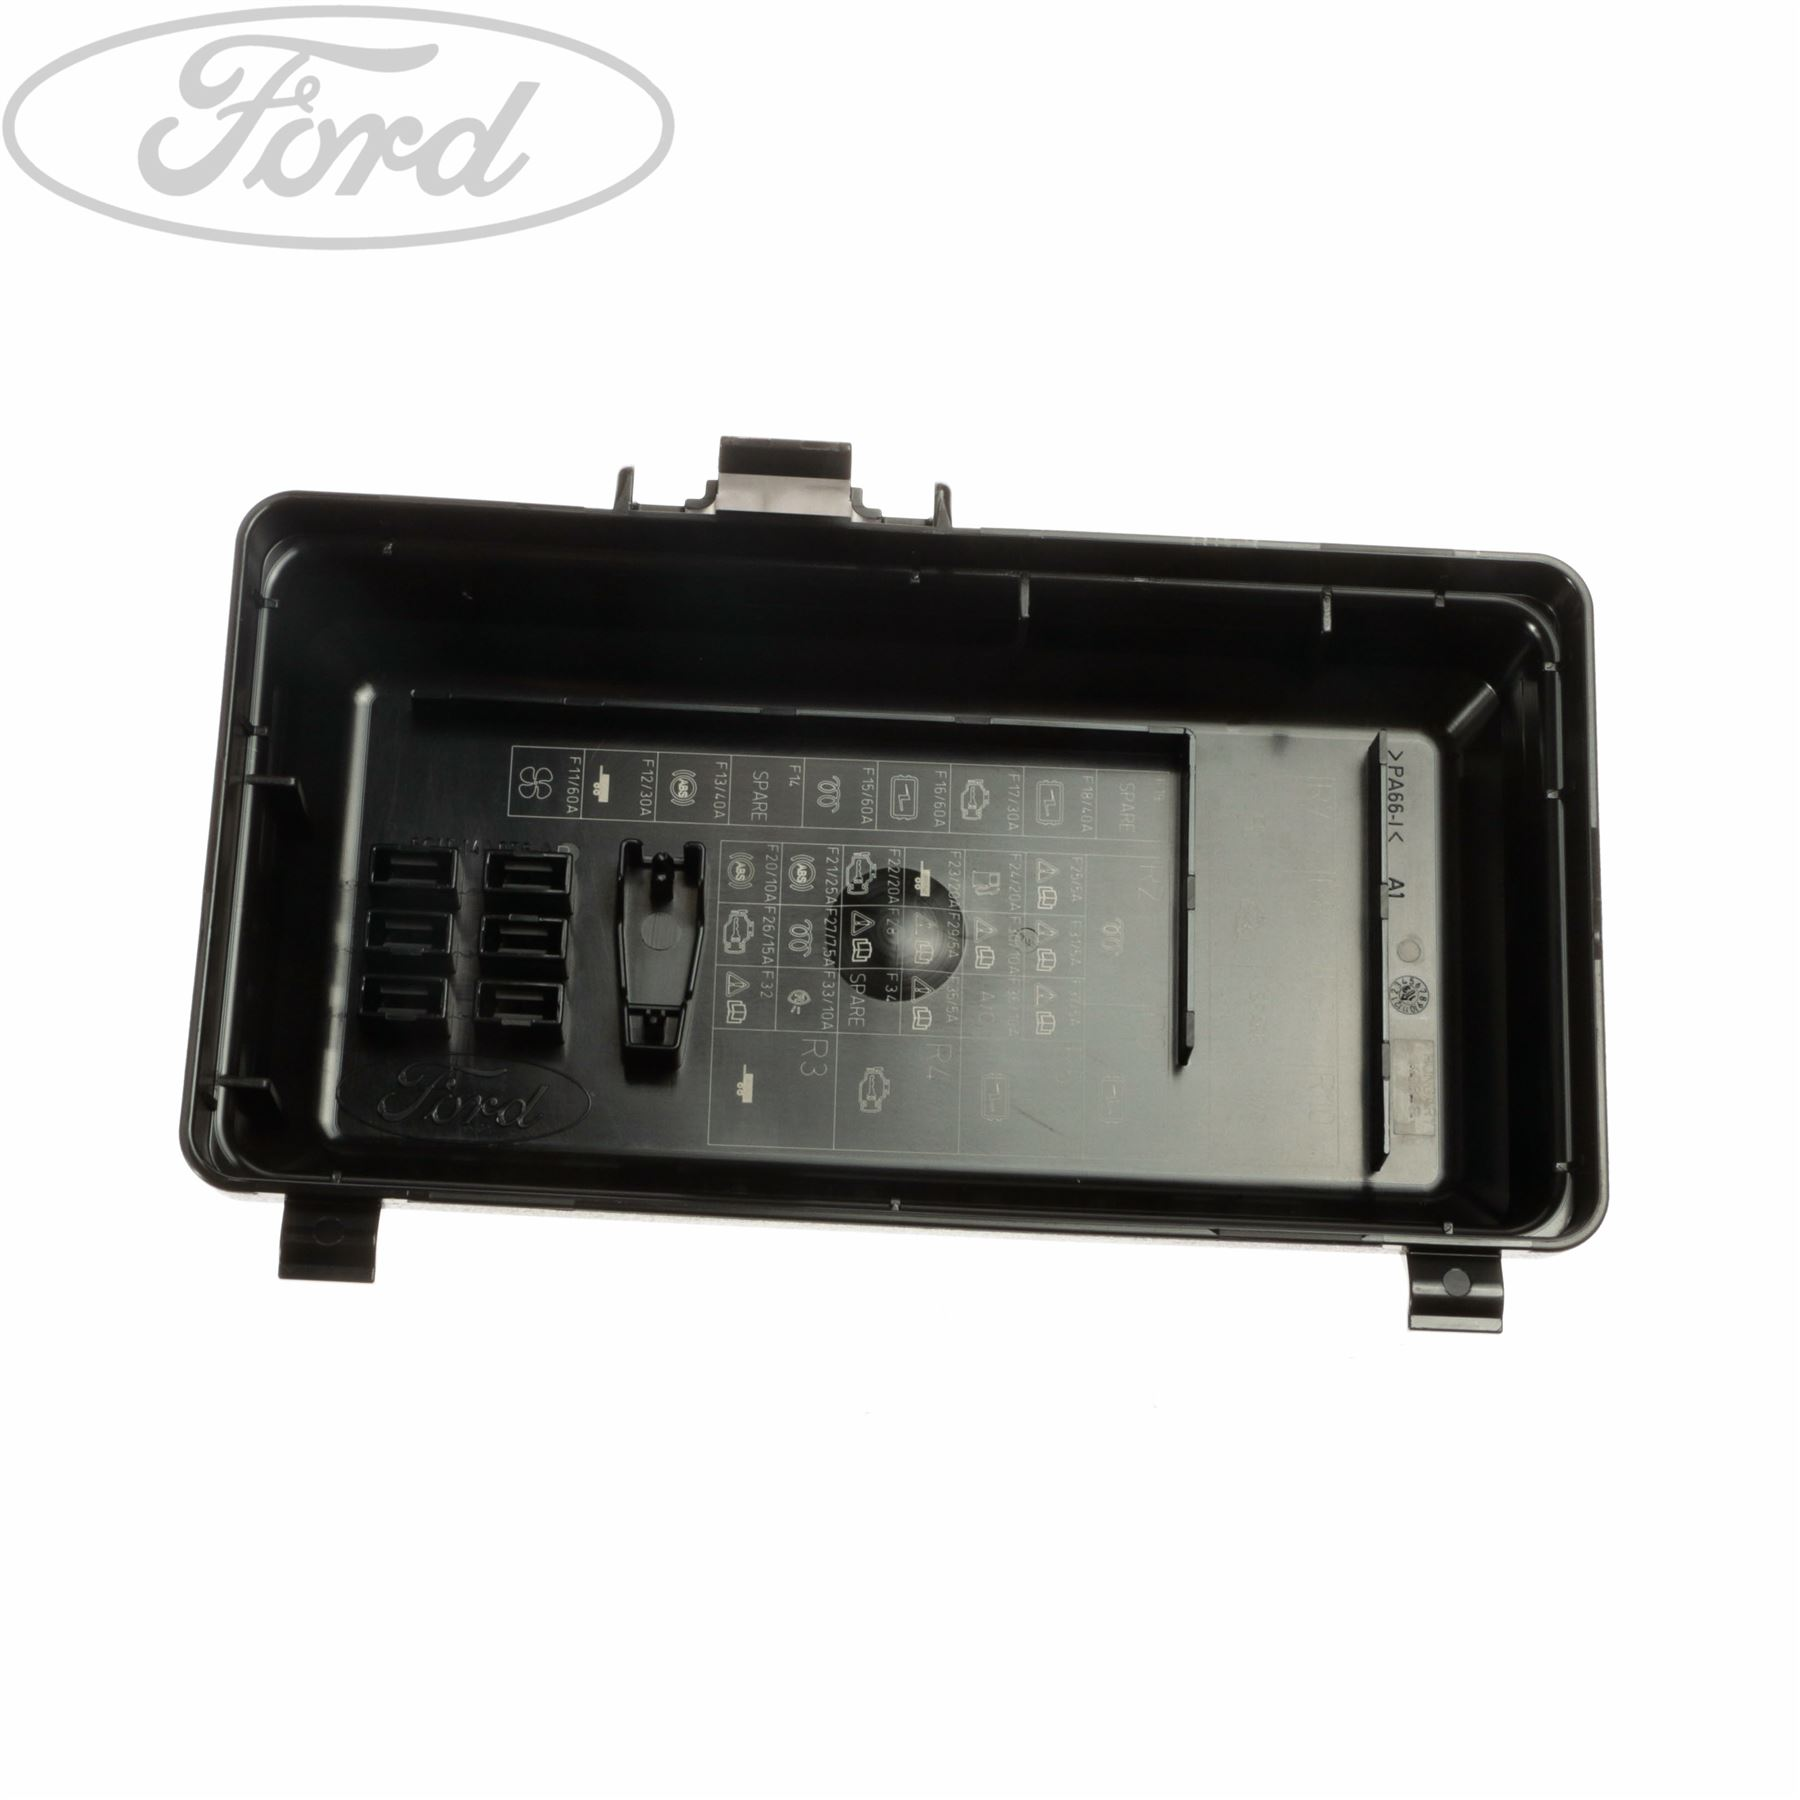 Genuine Ford Transit Mk 7 Additional Fuse Box Cover 1579004 Ebay F20